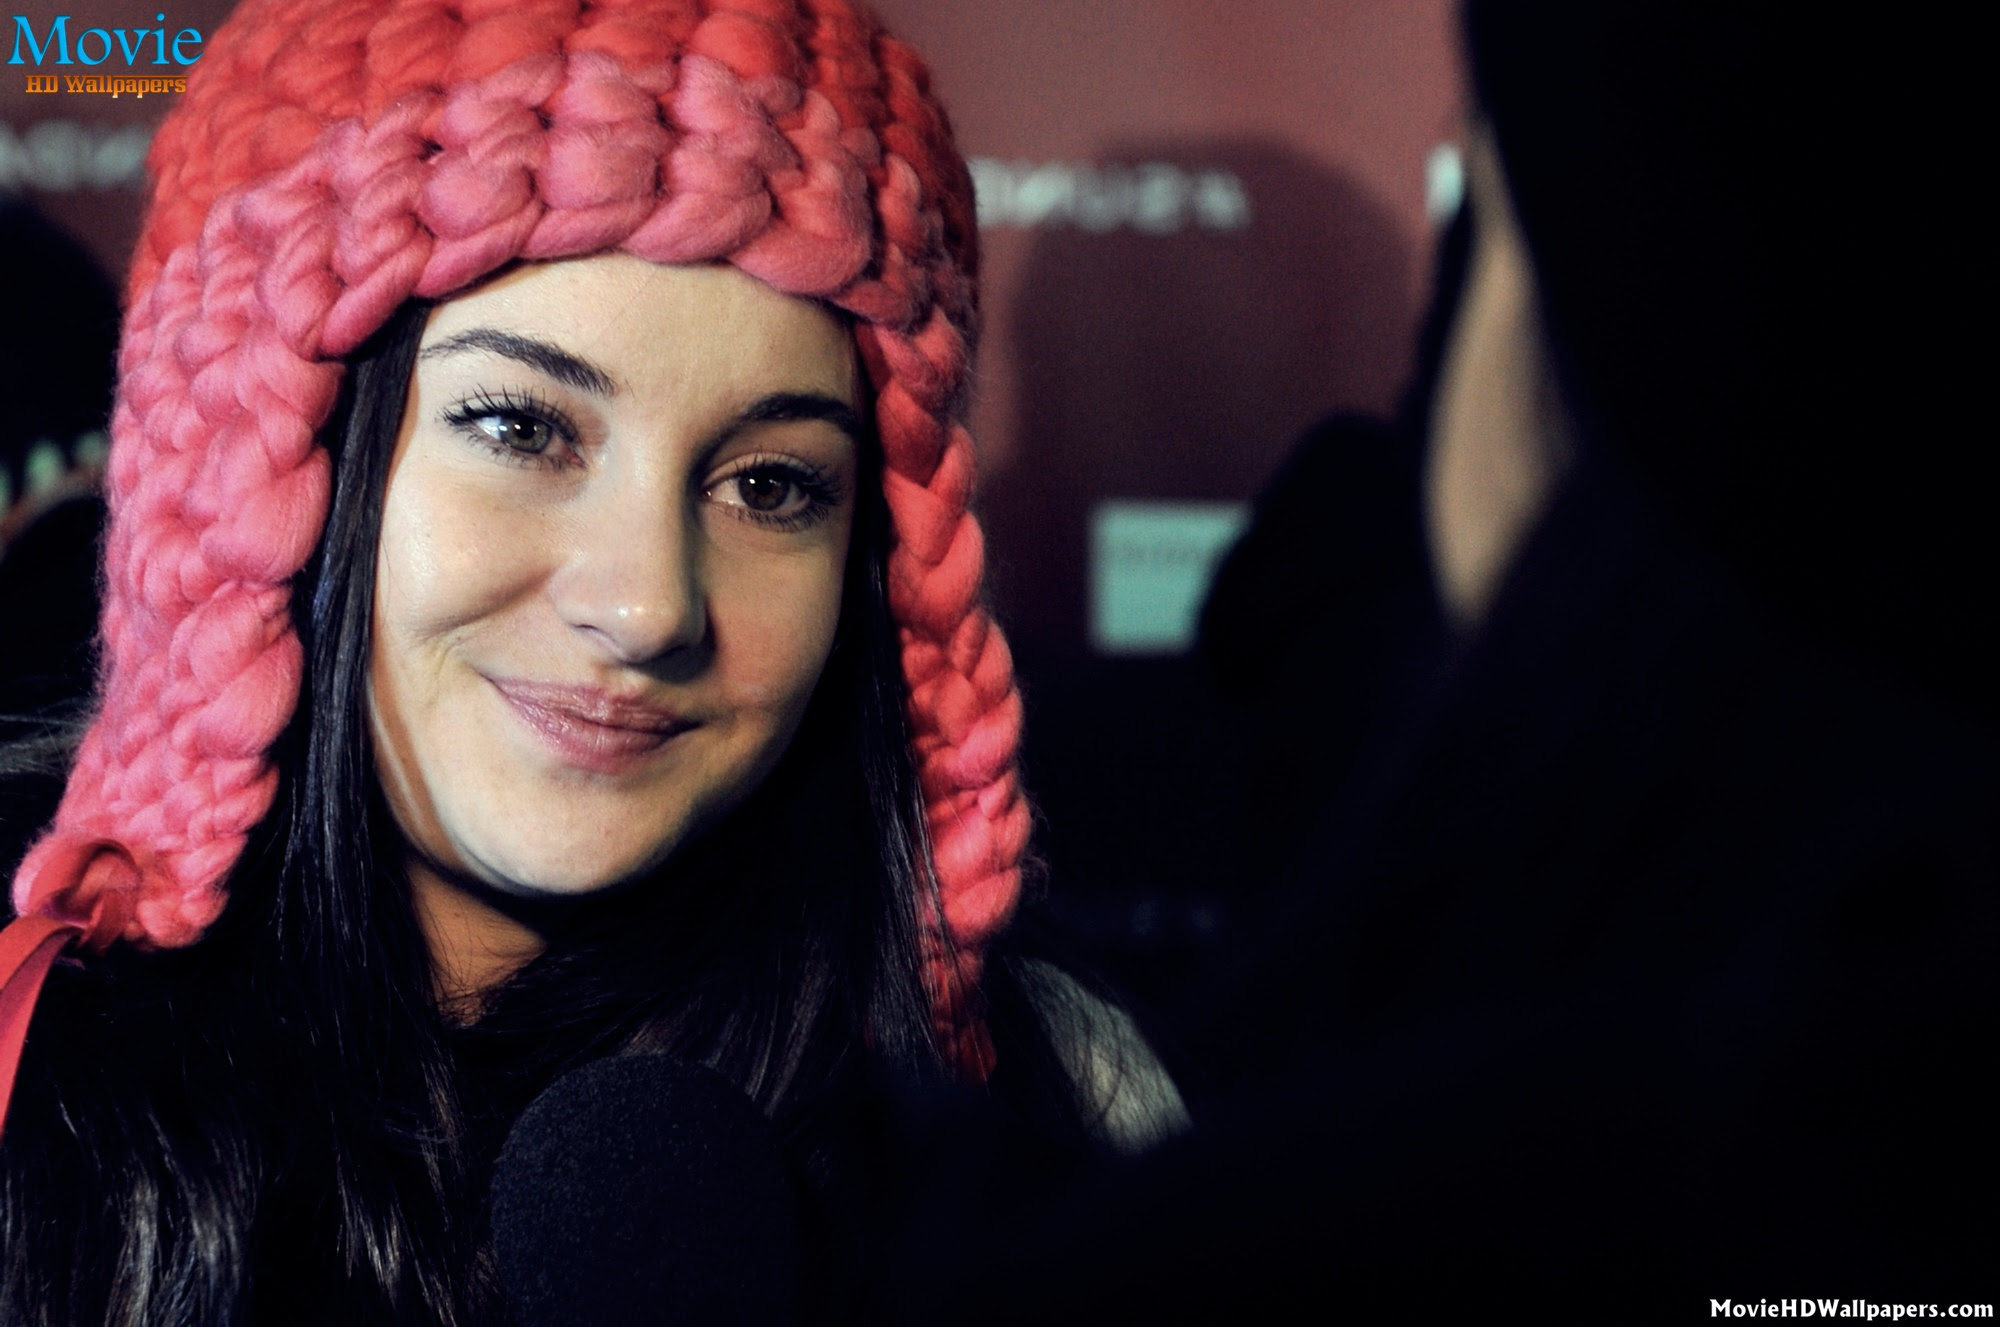 Shailene Woodley In The Spectacular Now Movie Hd Wallpapers